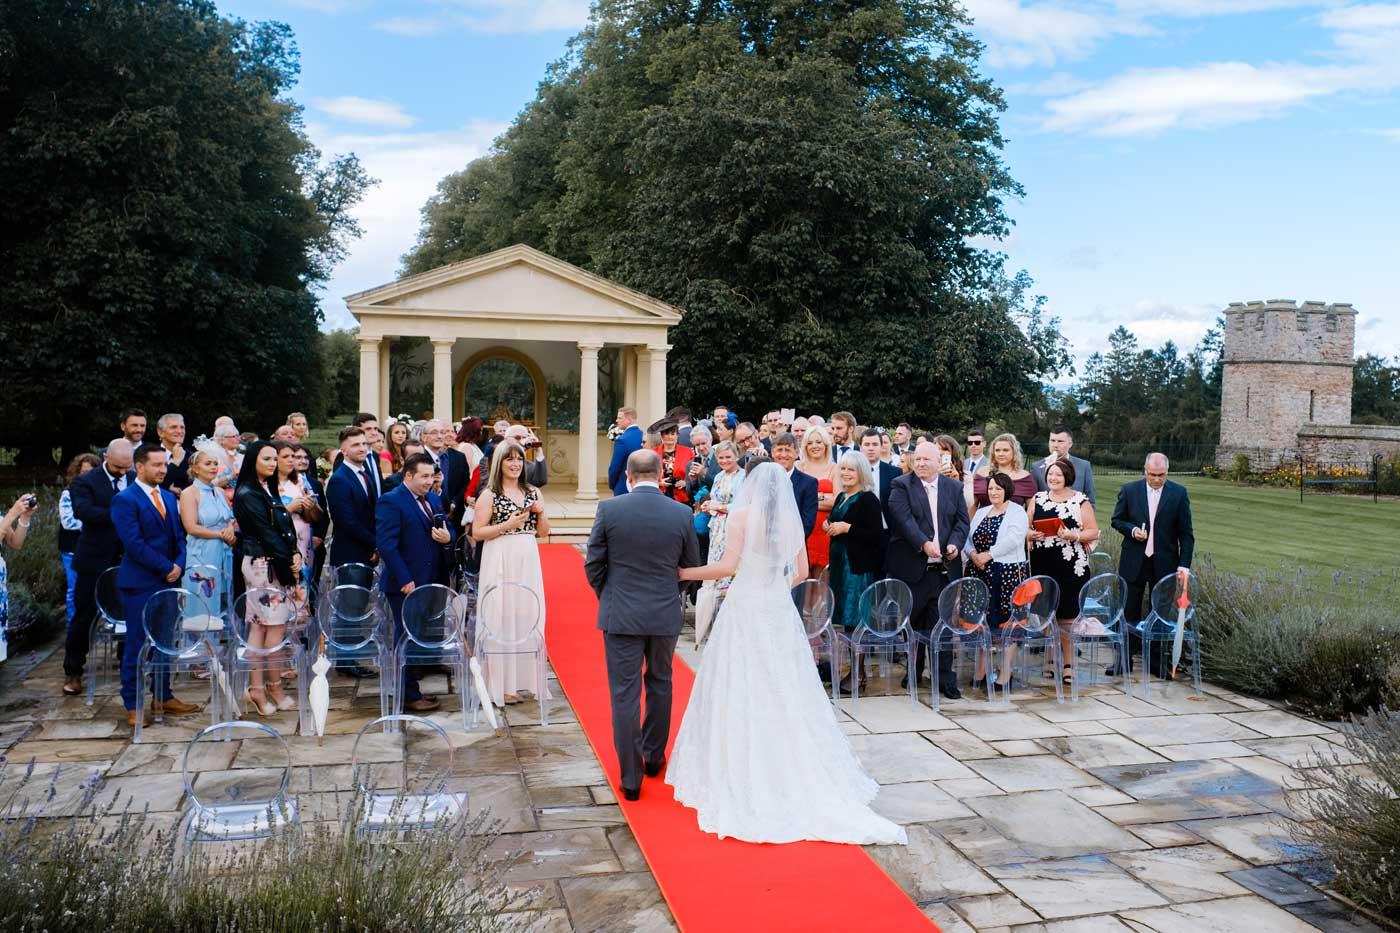 Bride arring at The Linden Belvedere at Rowton Castle by Rowton Castle documentray wedding photographer Clive Blair Photography